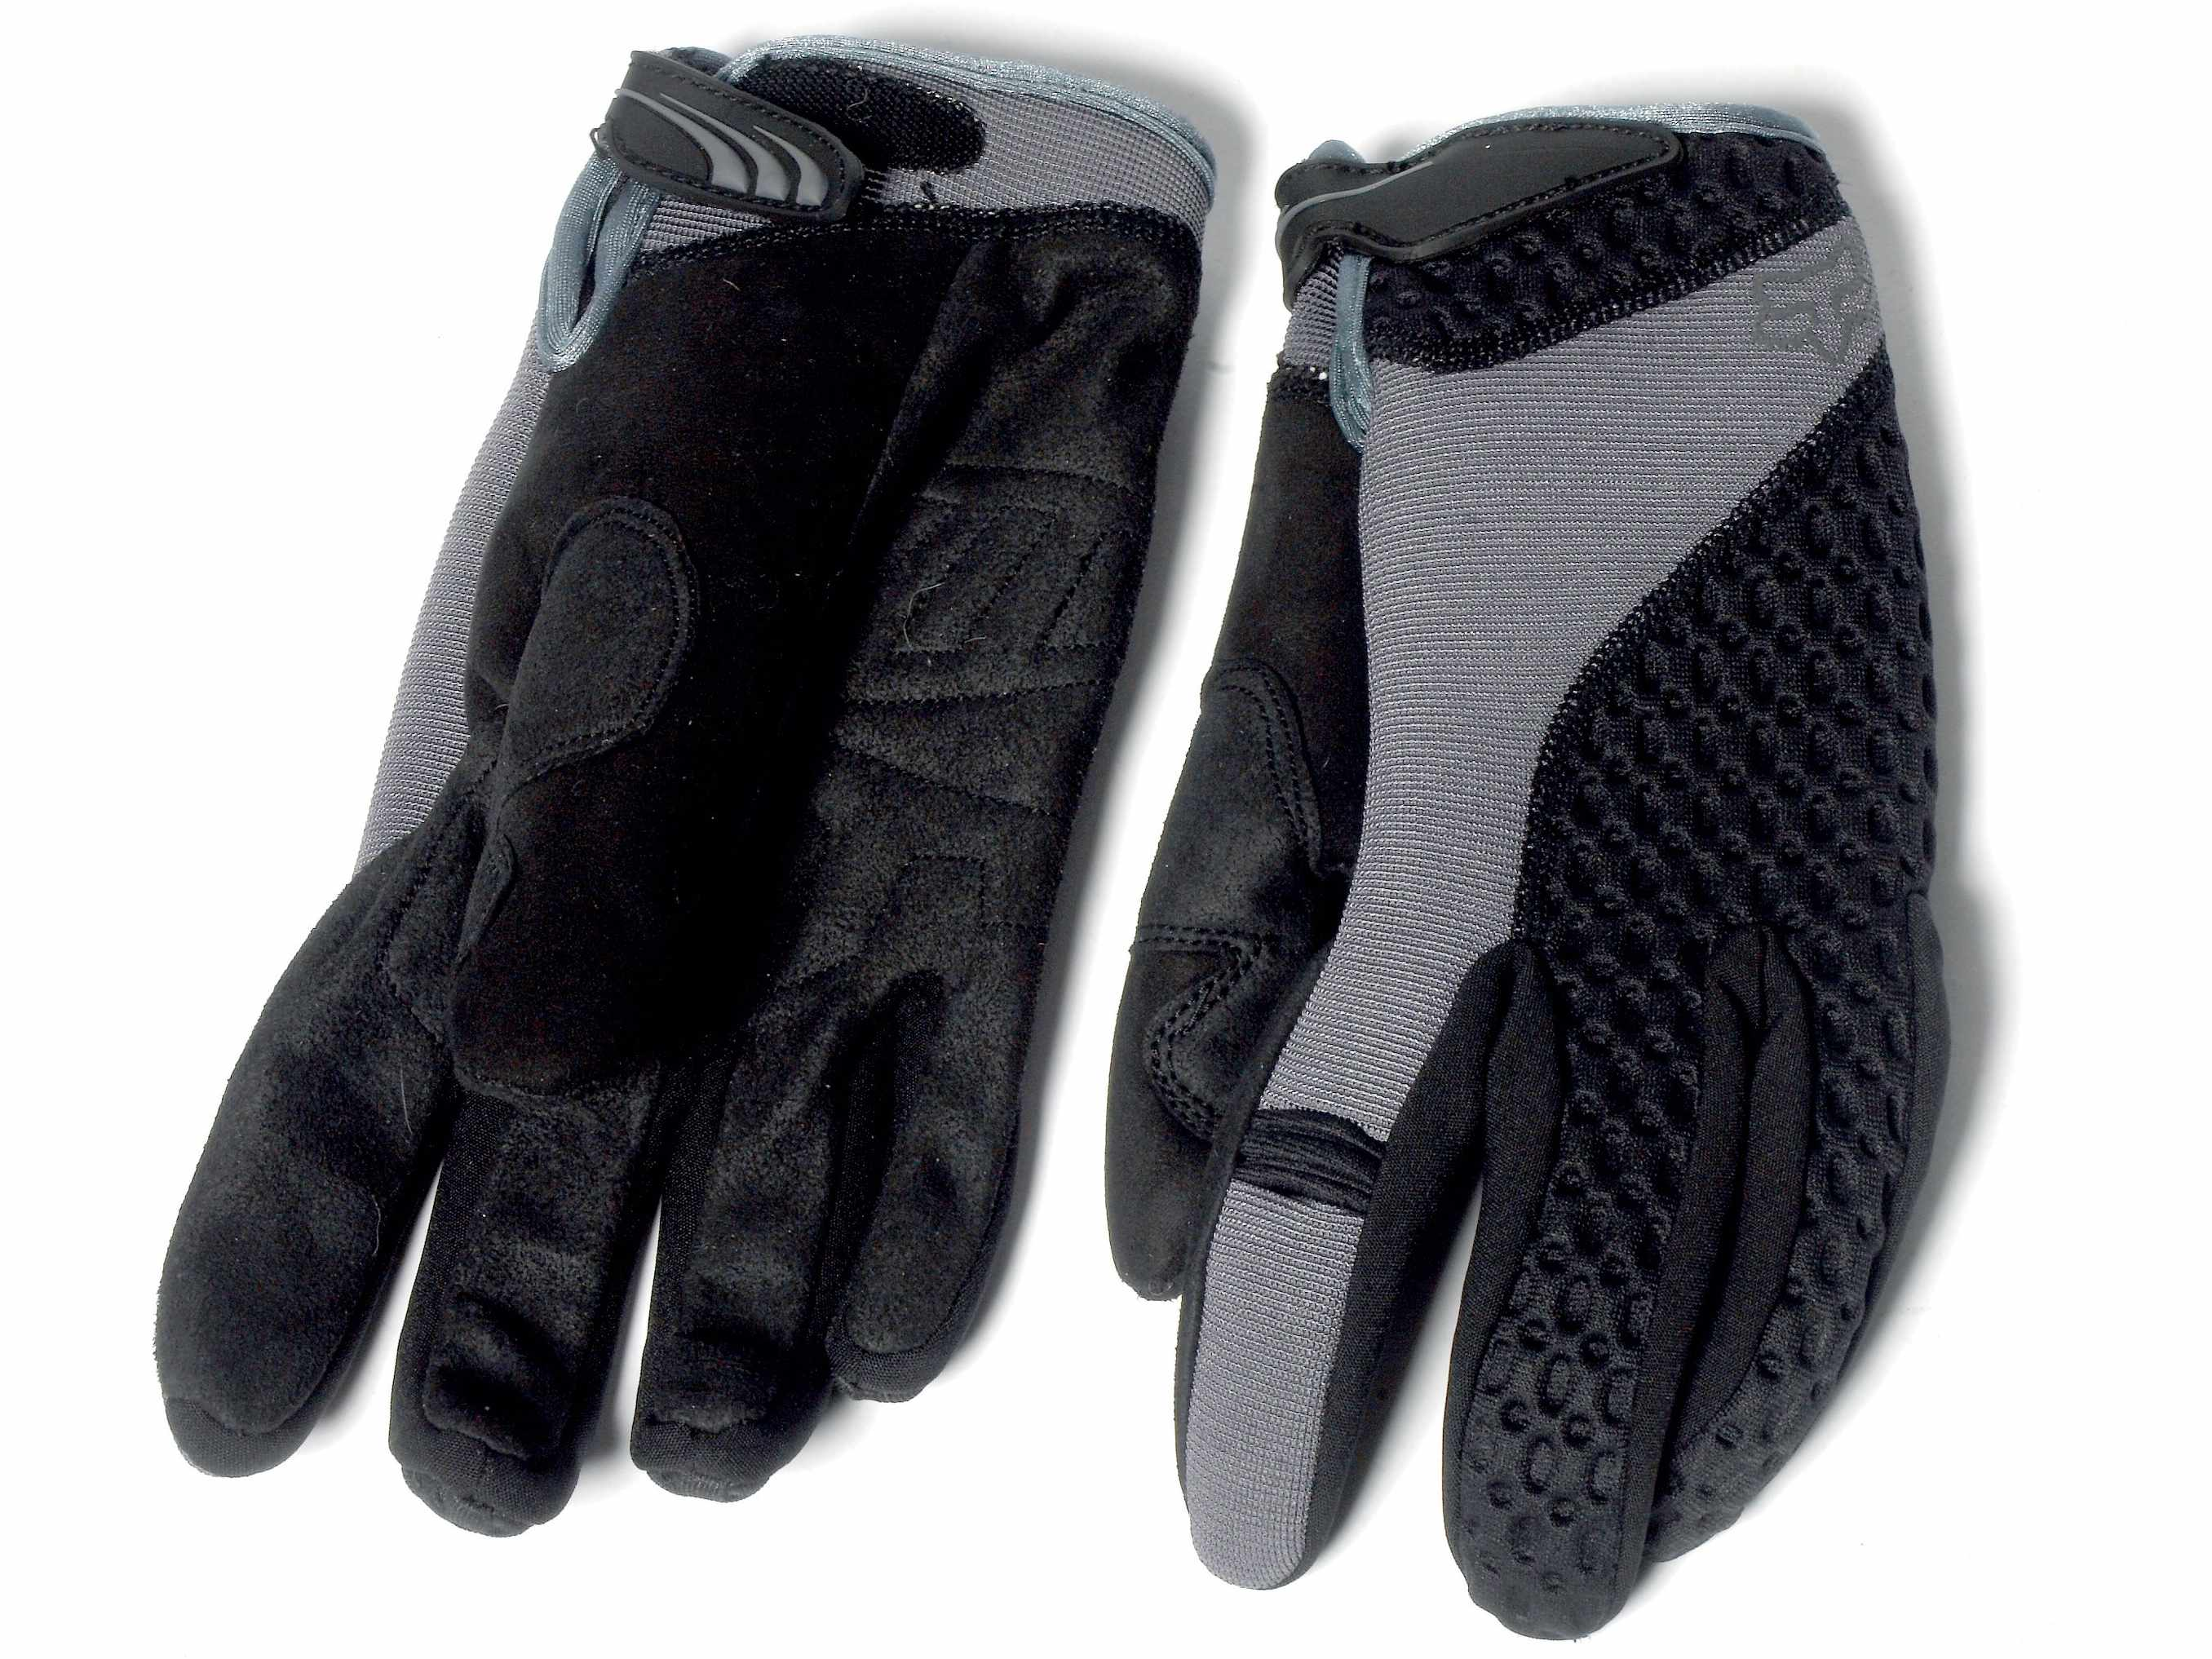 Fox's Thermalpaw offers comfort and durability for road bikers